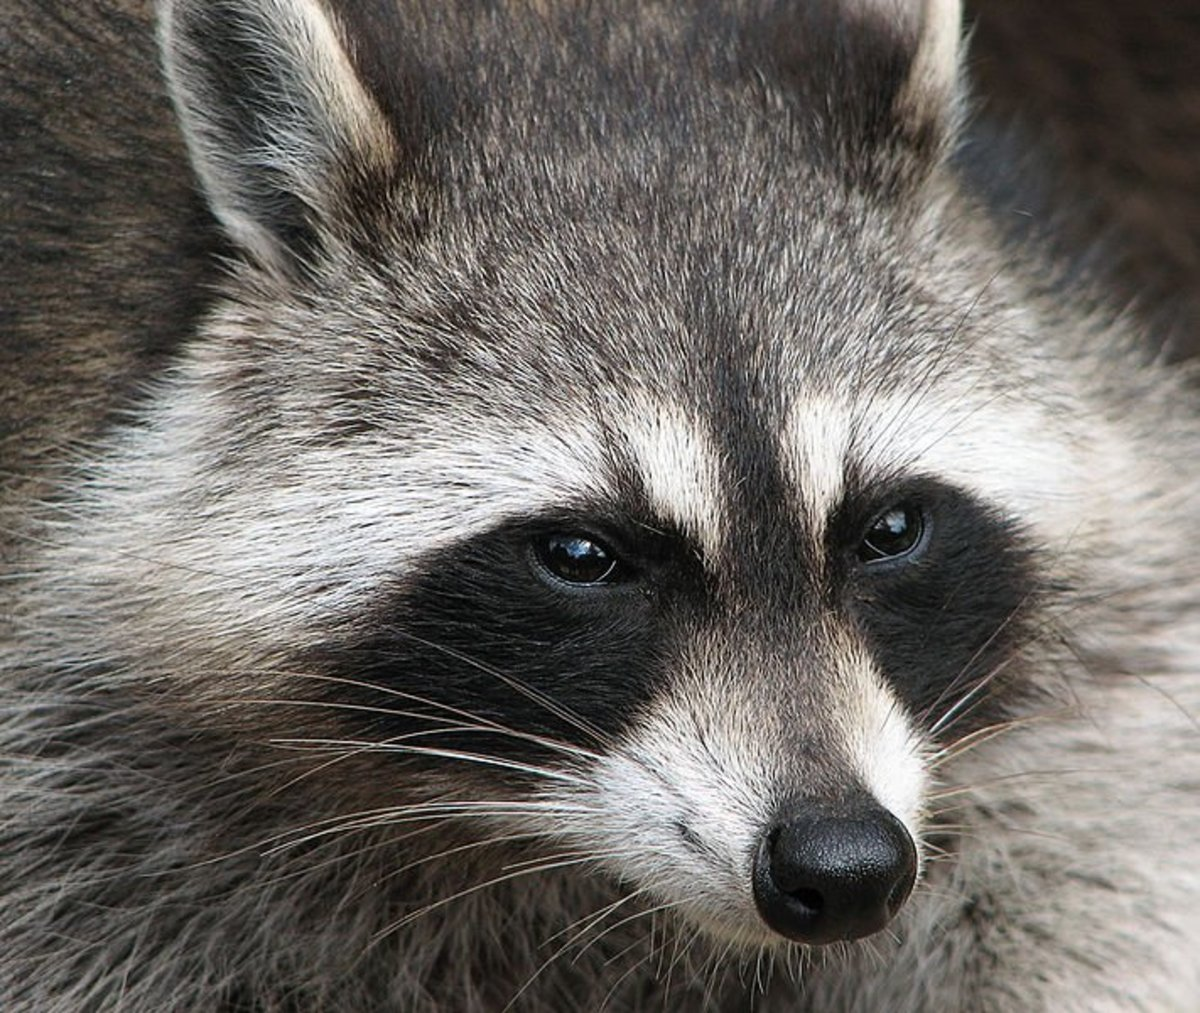 How to Get Rid of Raccoons - Deterrent Methods